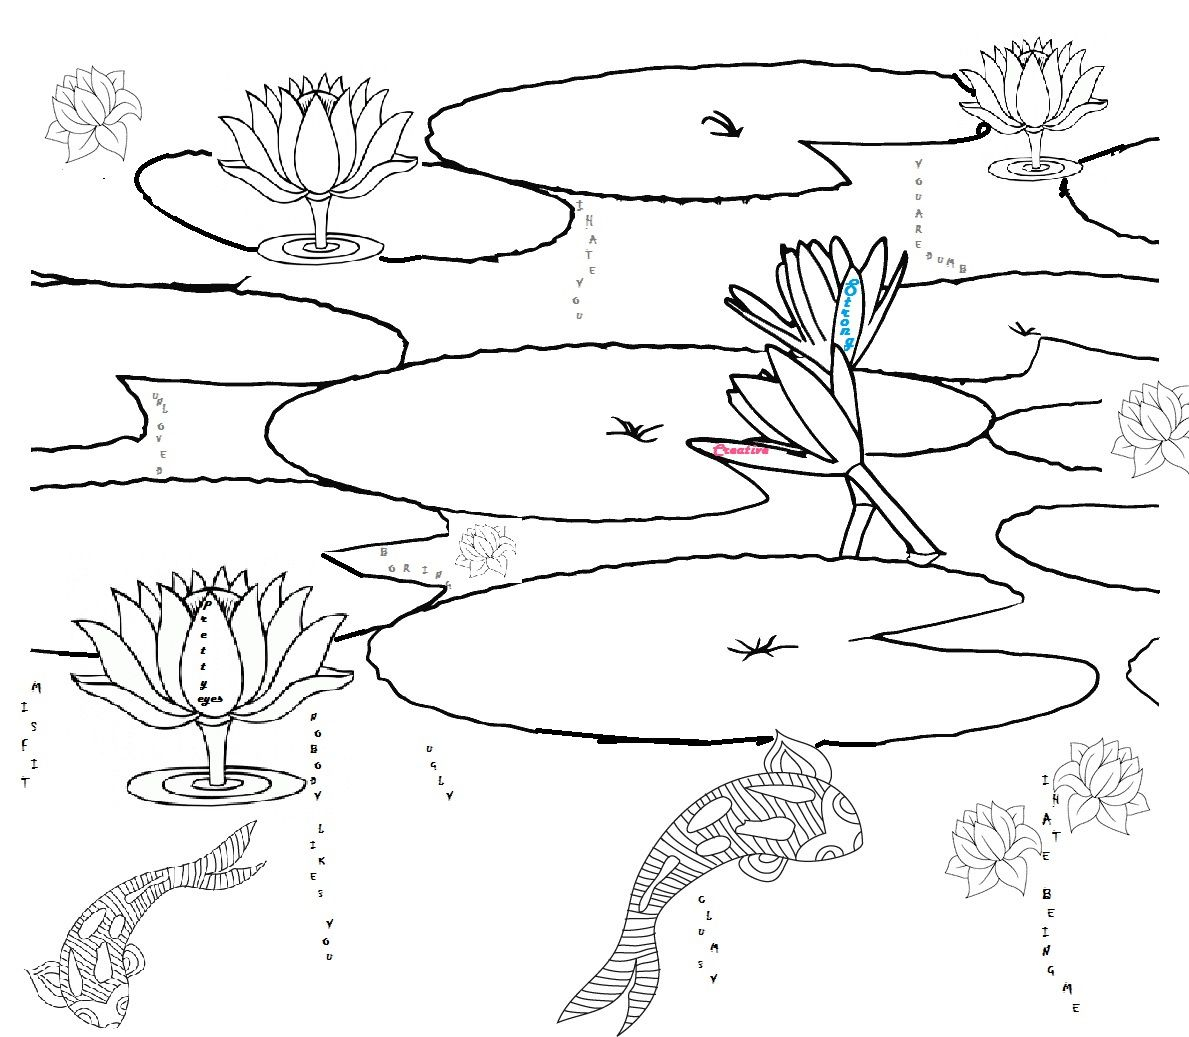 Printable Pond Habitat Coloring Page Sketch Coloring Page